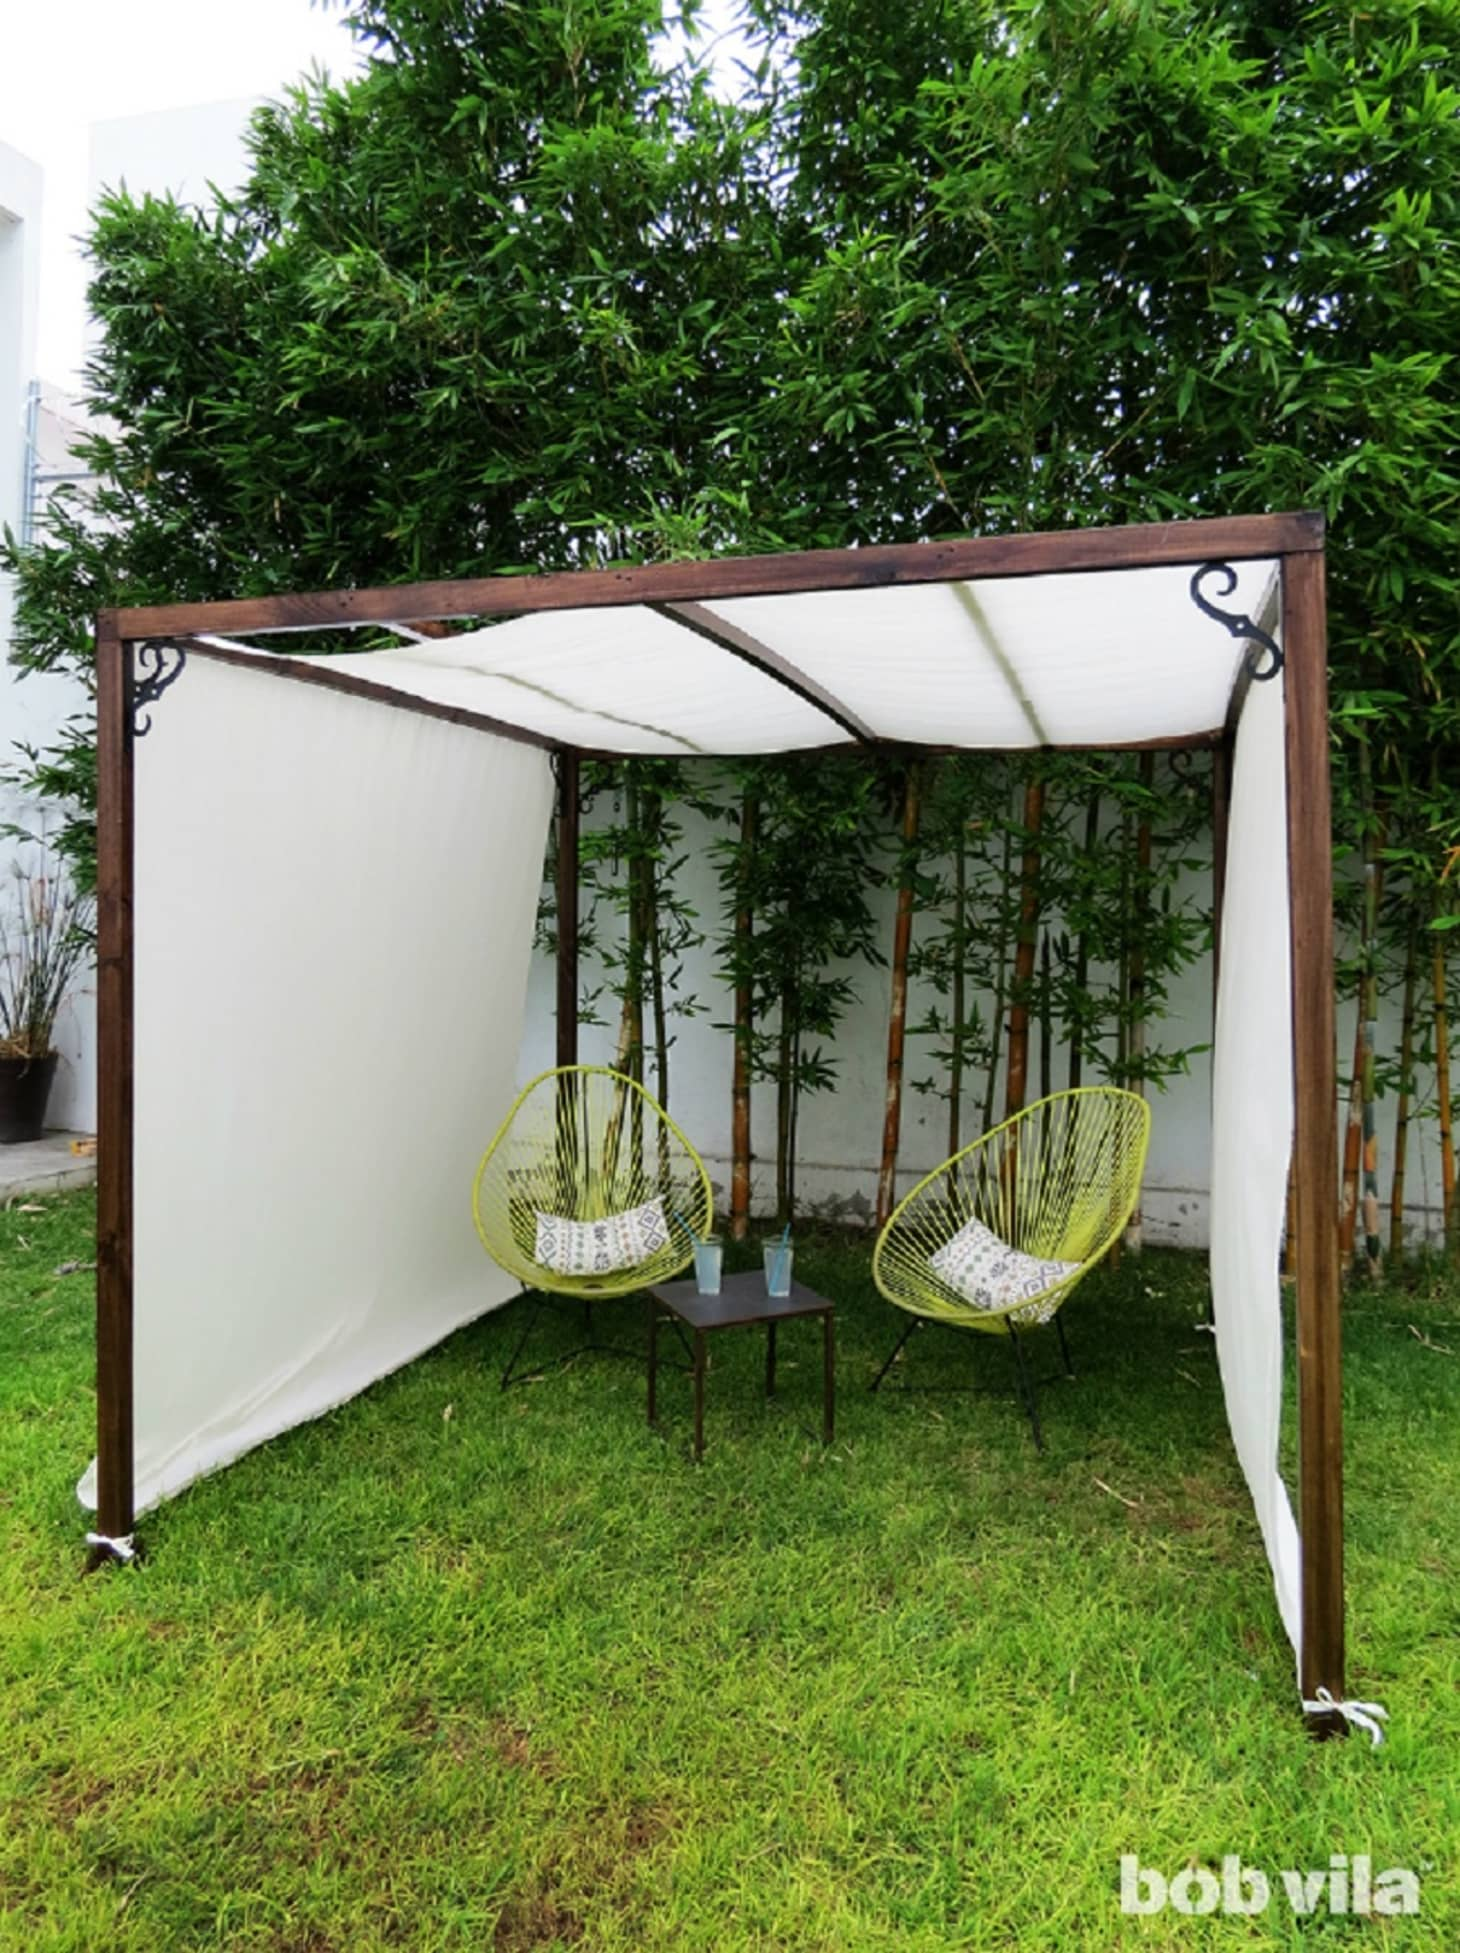 Privacy Fences & Screens You Can Make Yourself | Apartment Therapy